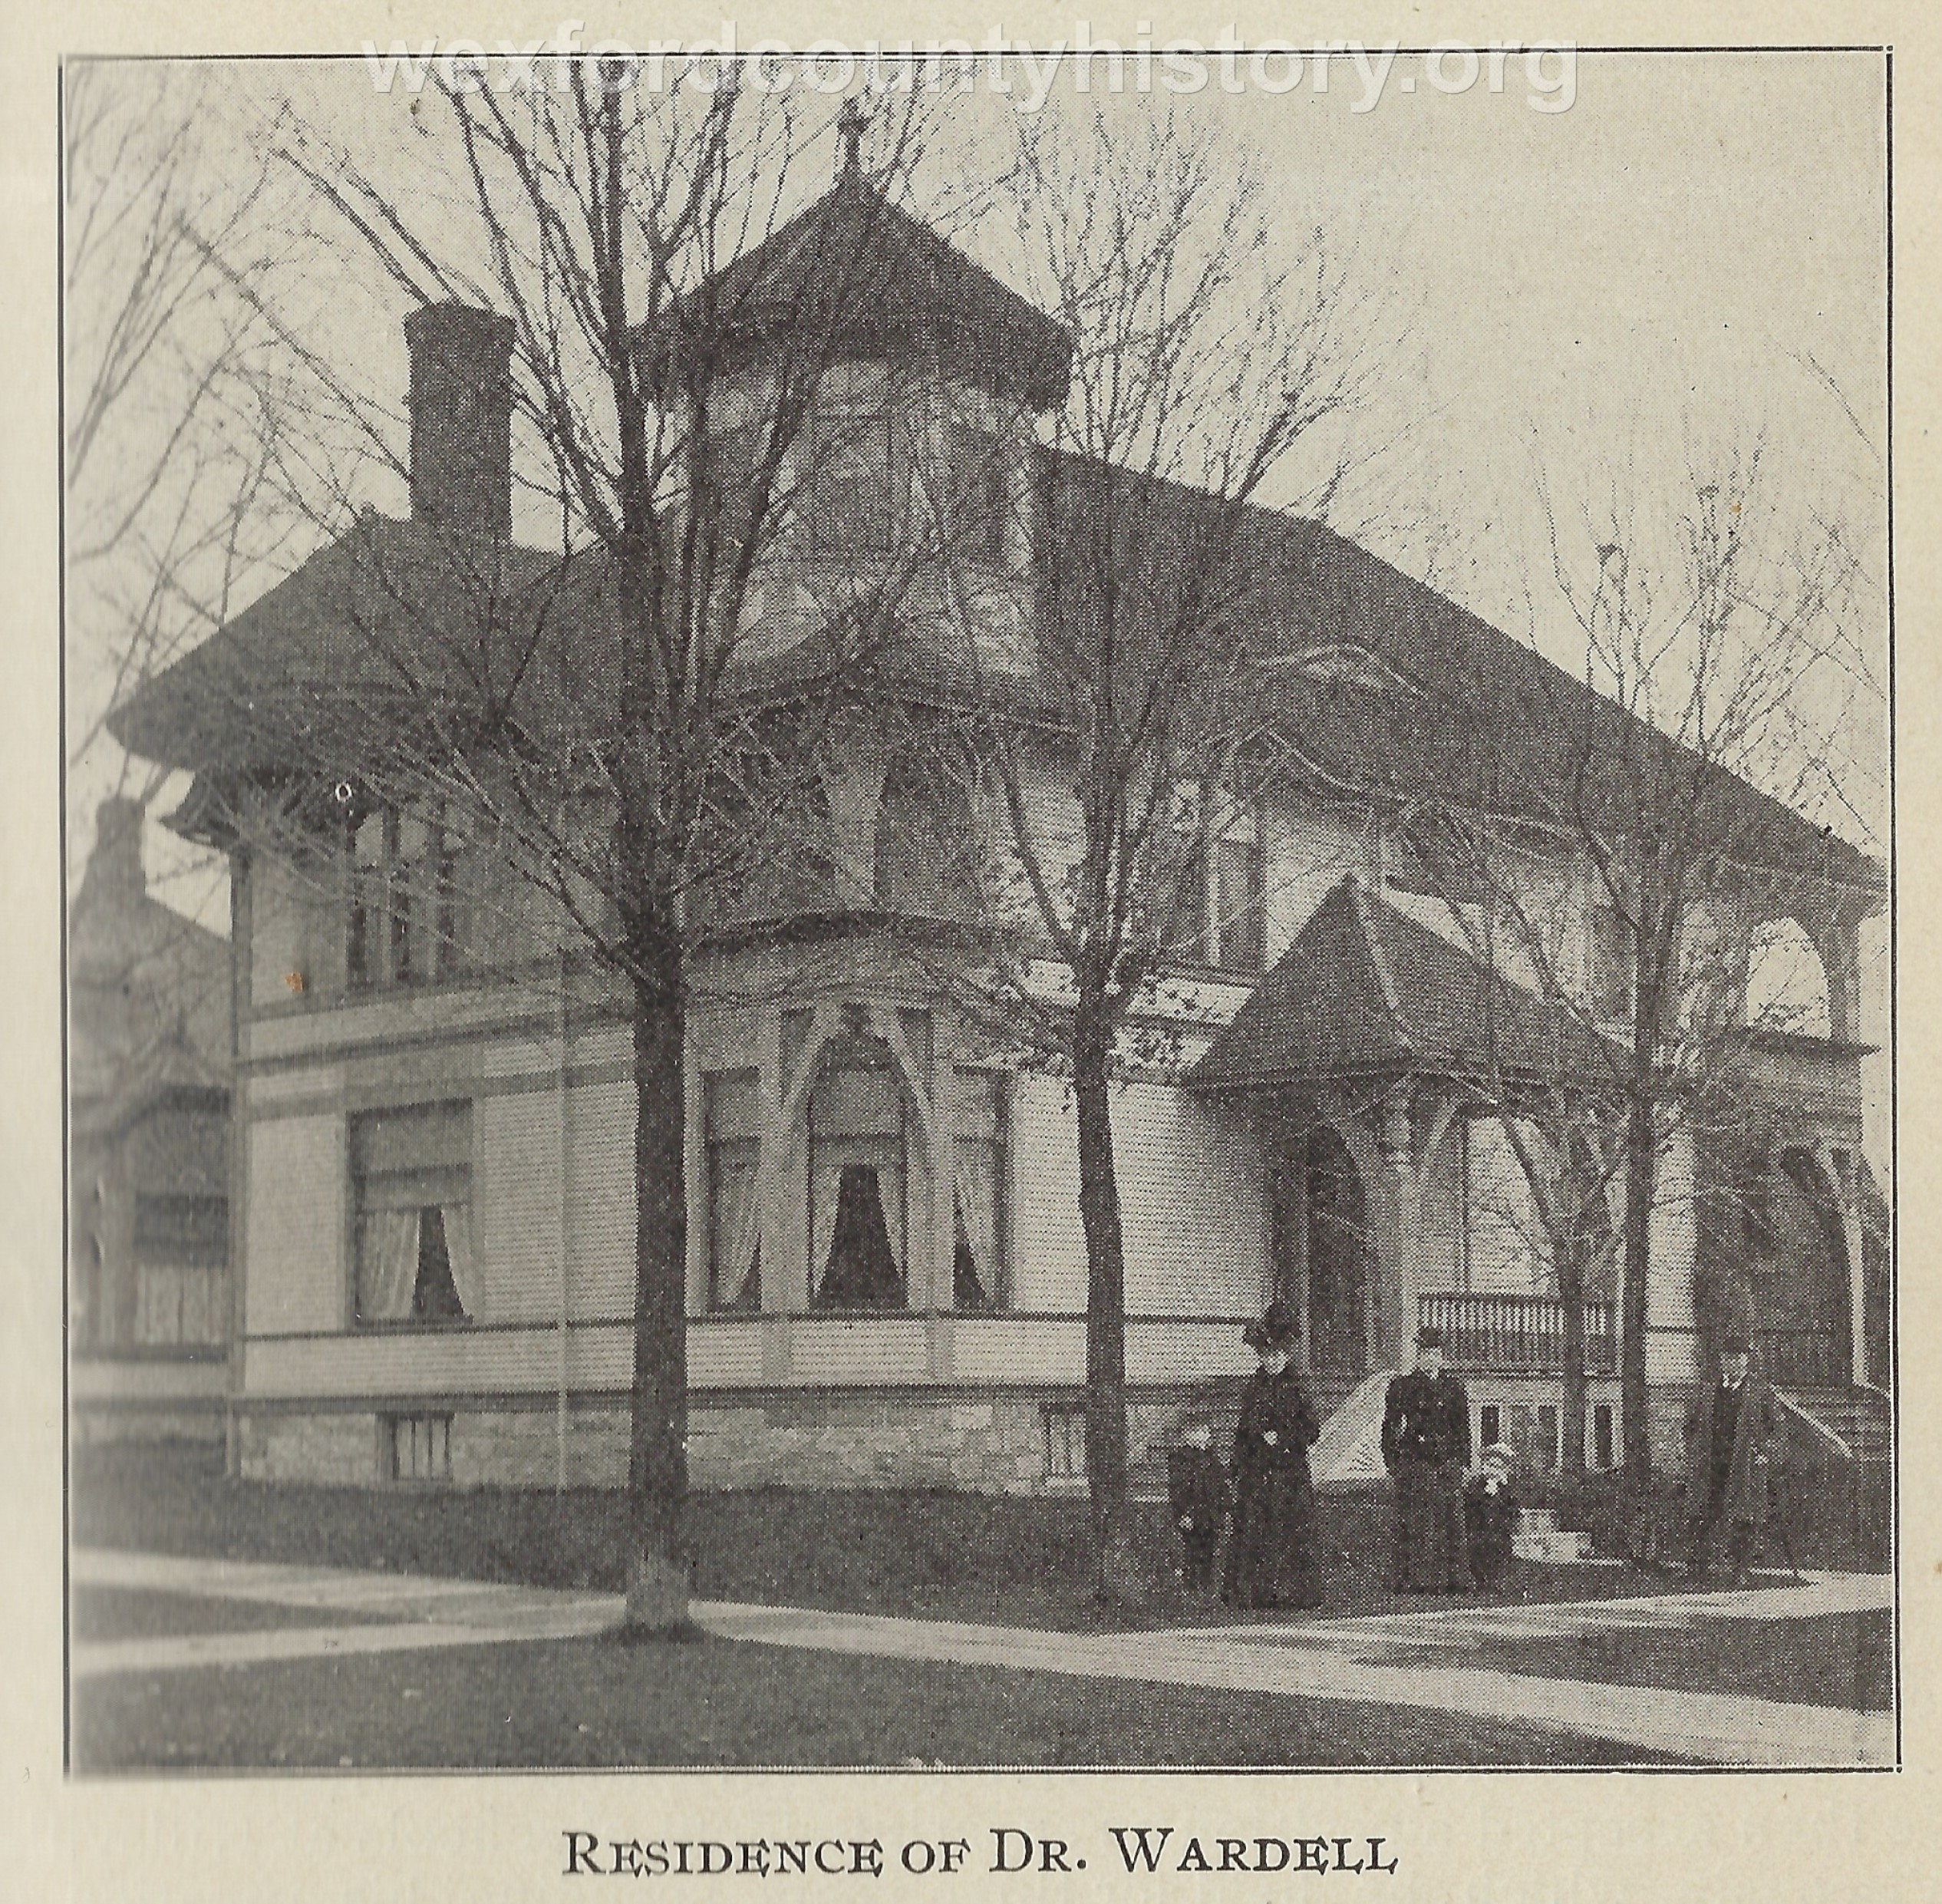 Dr. Wardell's House